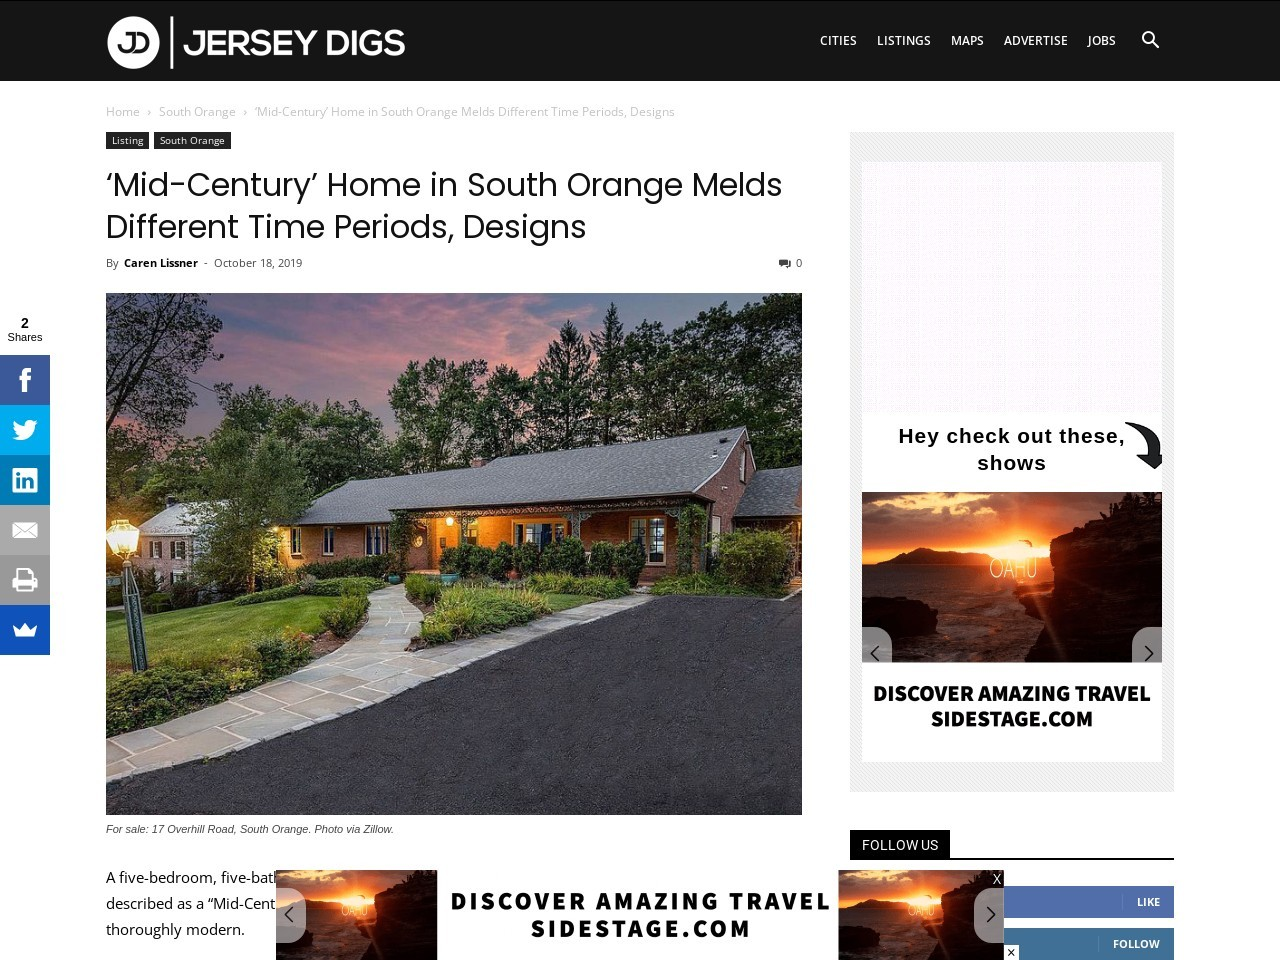 'Mid-Century' Home in South Orange Melds Different Time Periods, Designs